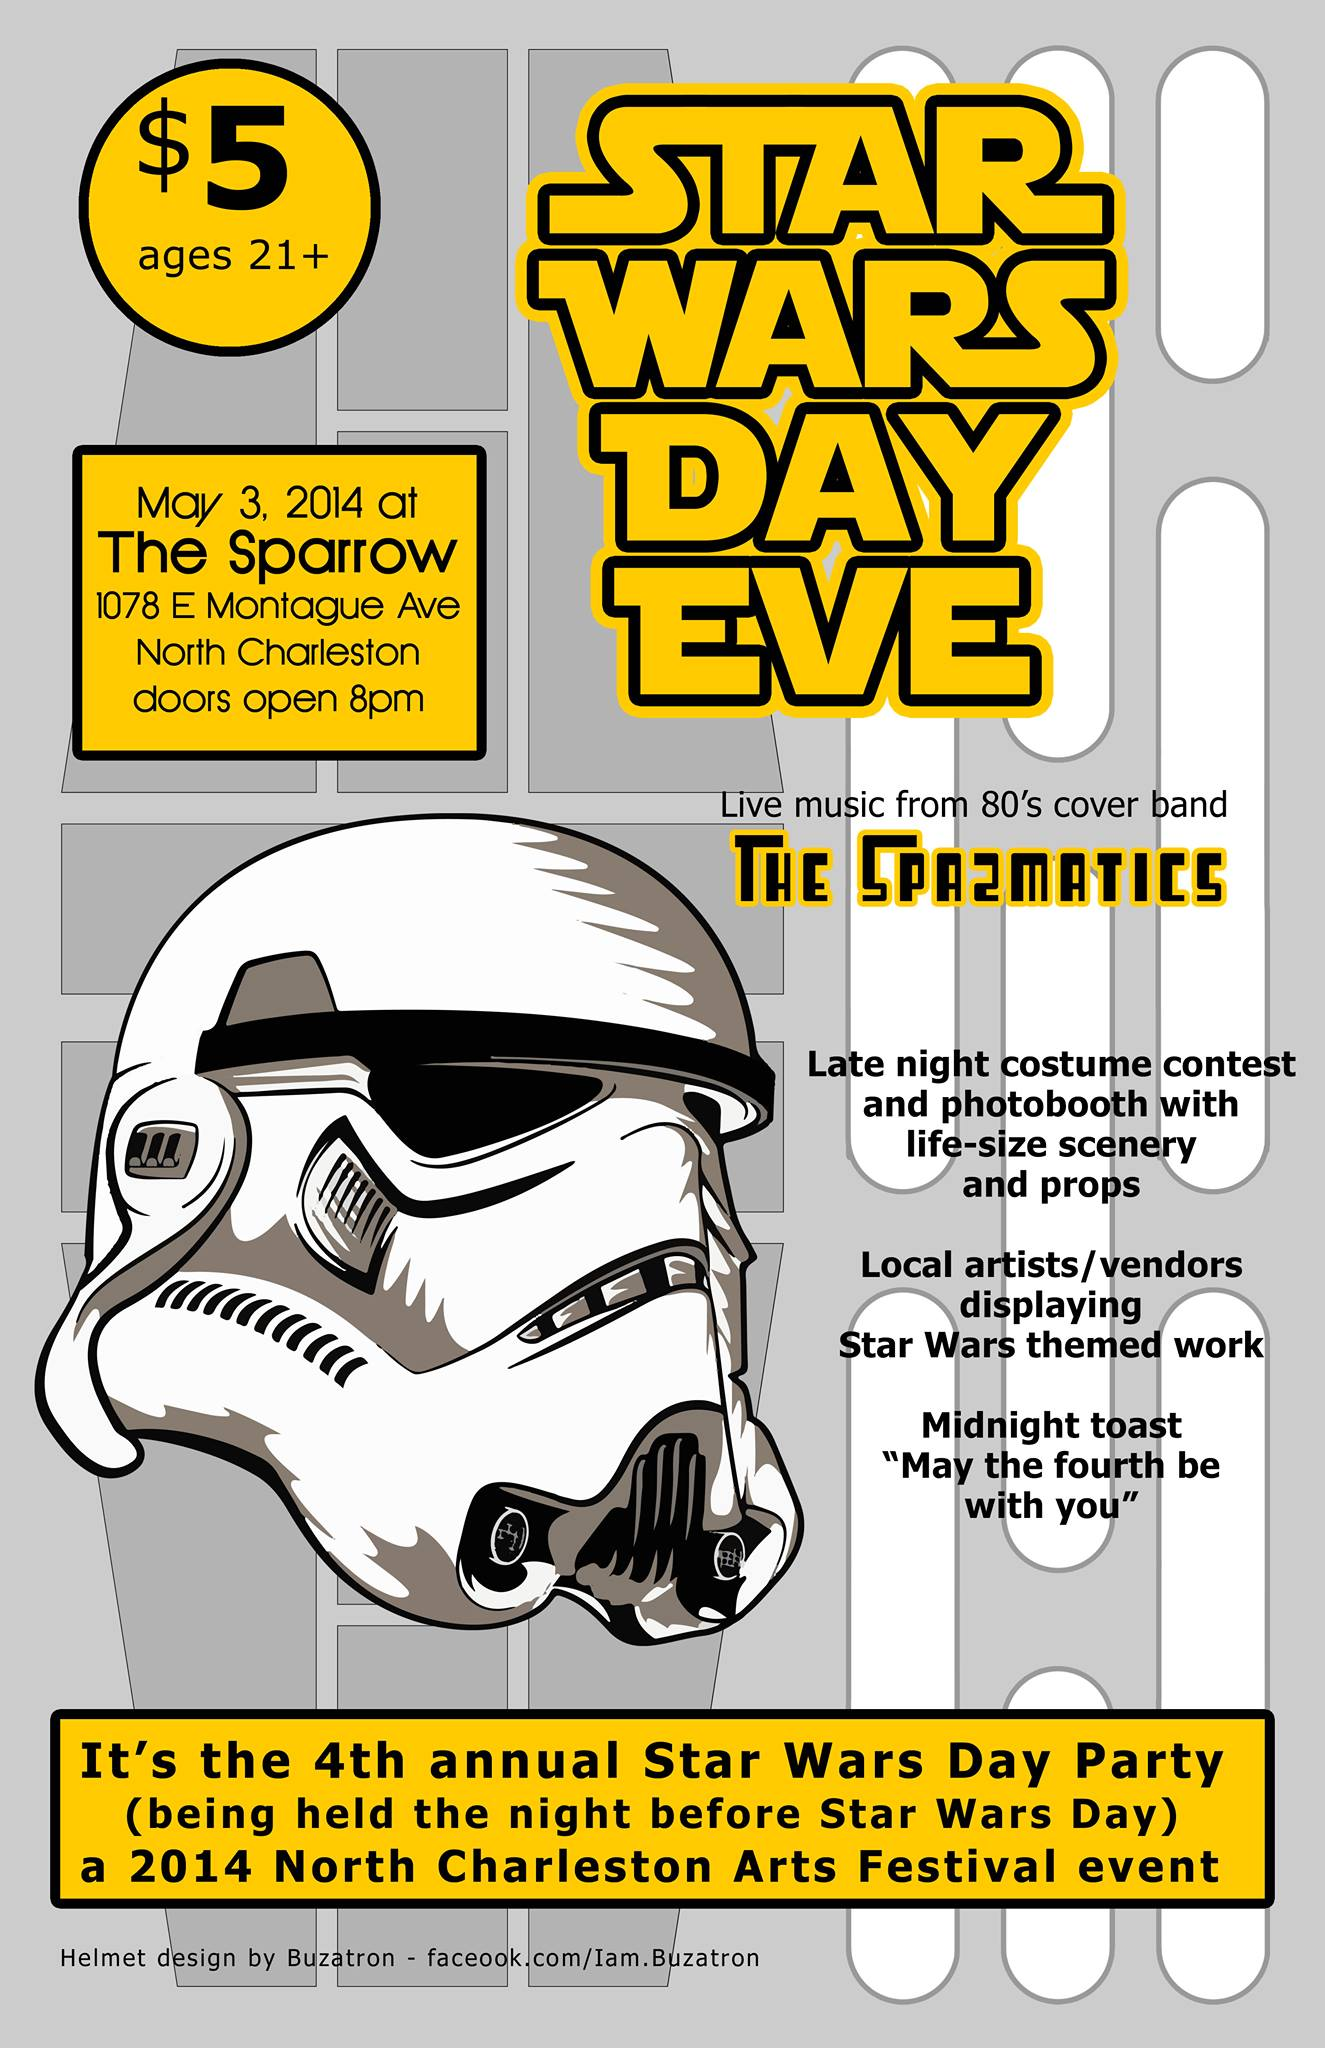 Star Wars Day Eve @ The Sparrow - May 3, 2014